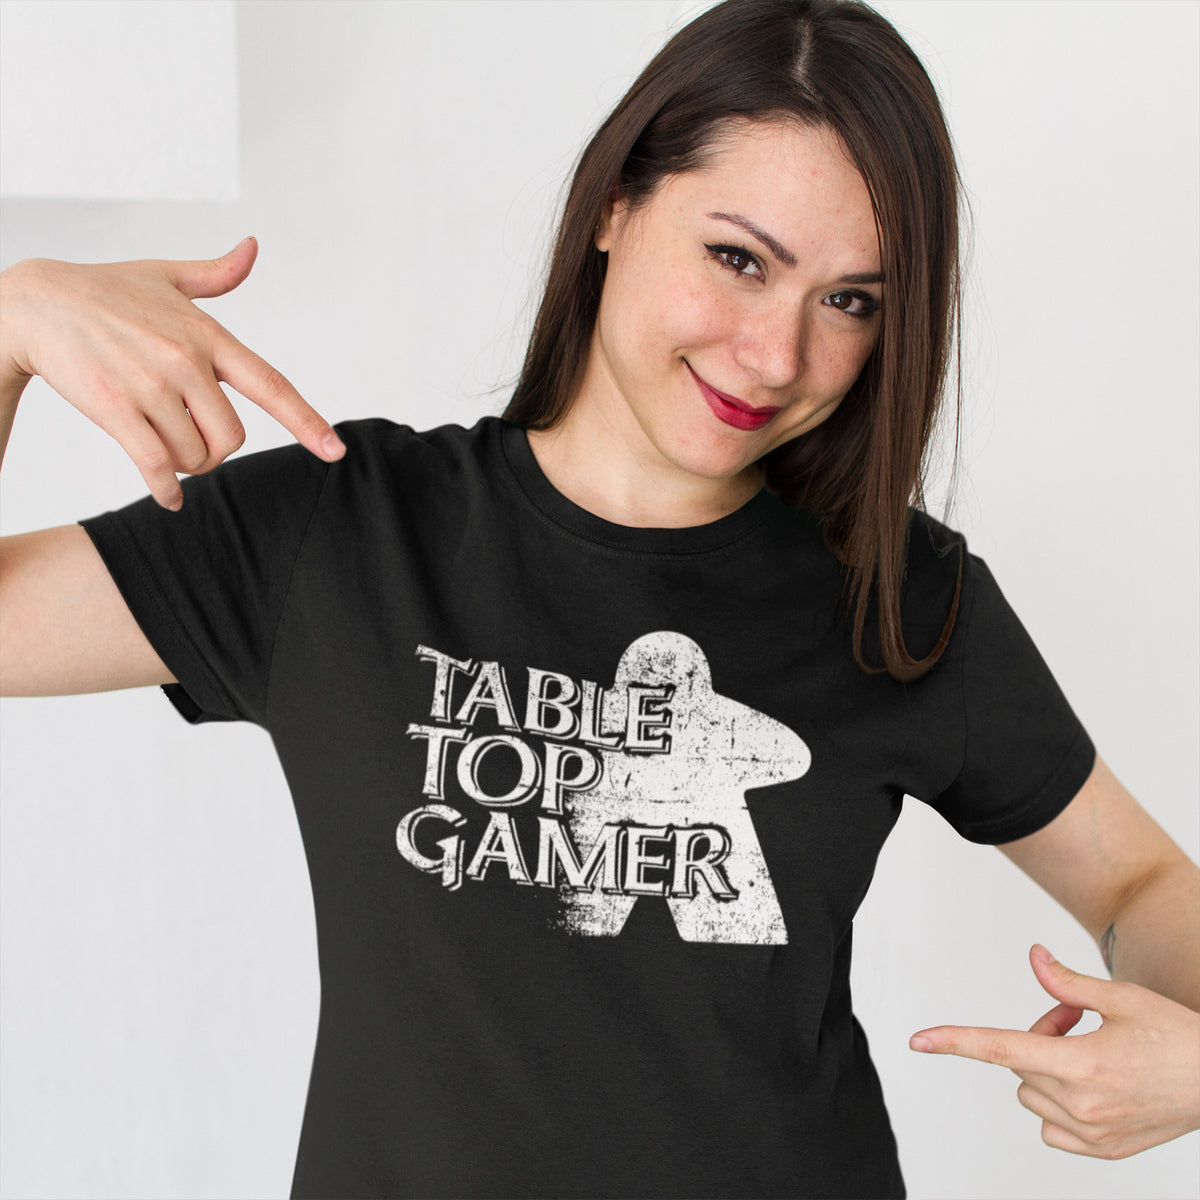 Table Top Gamer Board Game T-Shirt Action Shot Women's